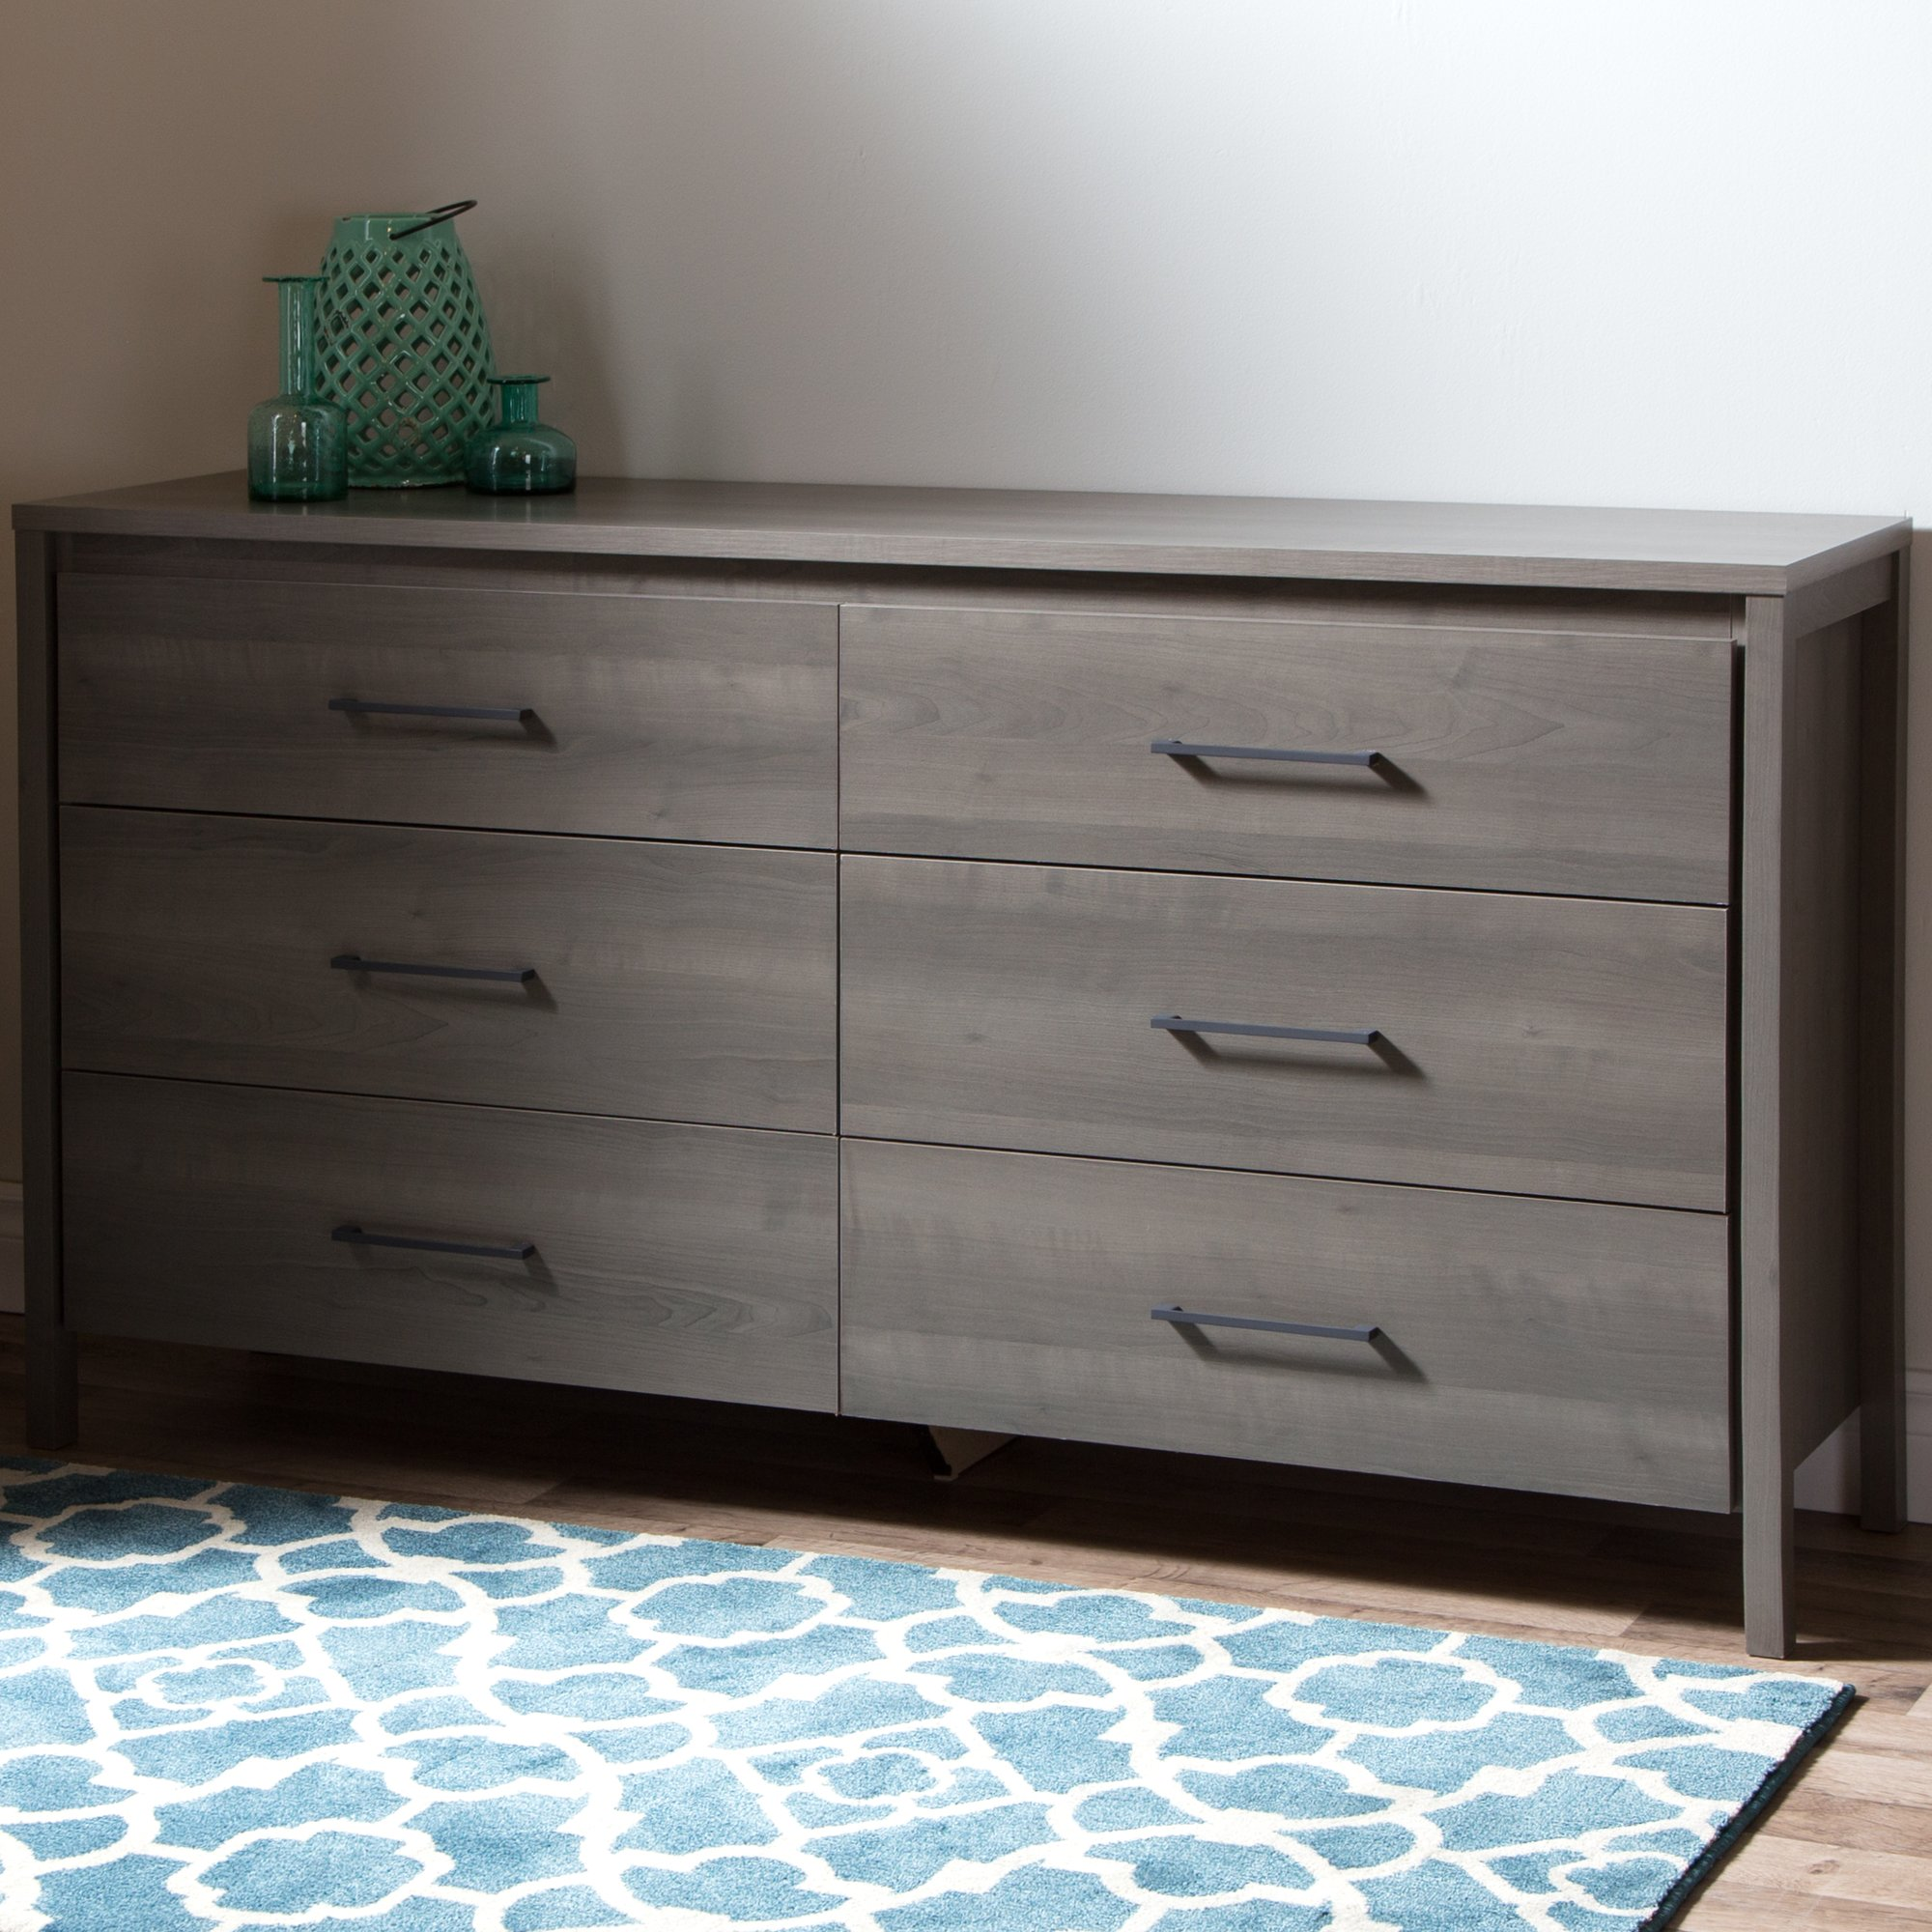 Gravity 6 Drawer Double Dresser  287 99  AllModern. Ikea Malm dresser alternatives  7 fab styles to shop now   Curbed